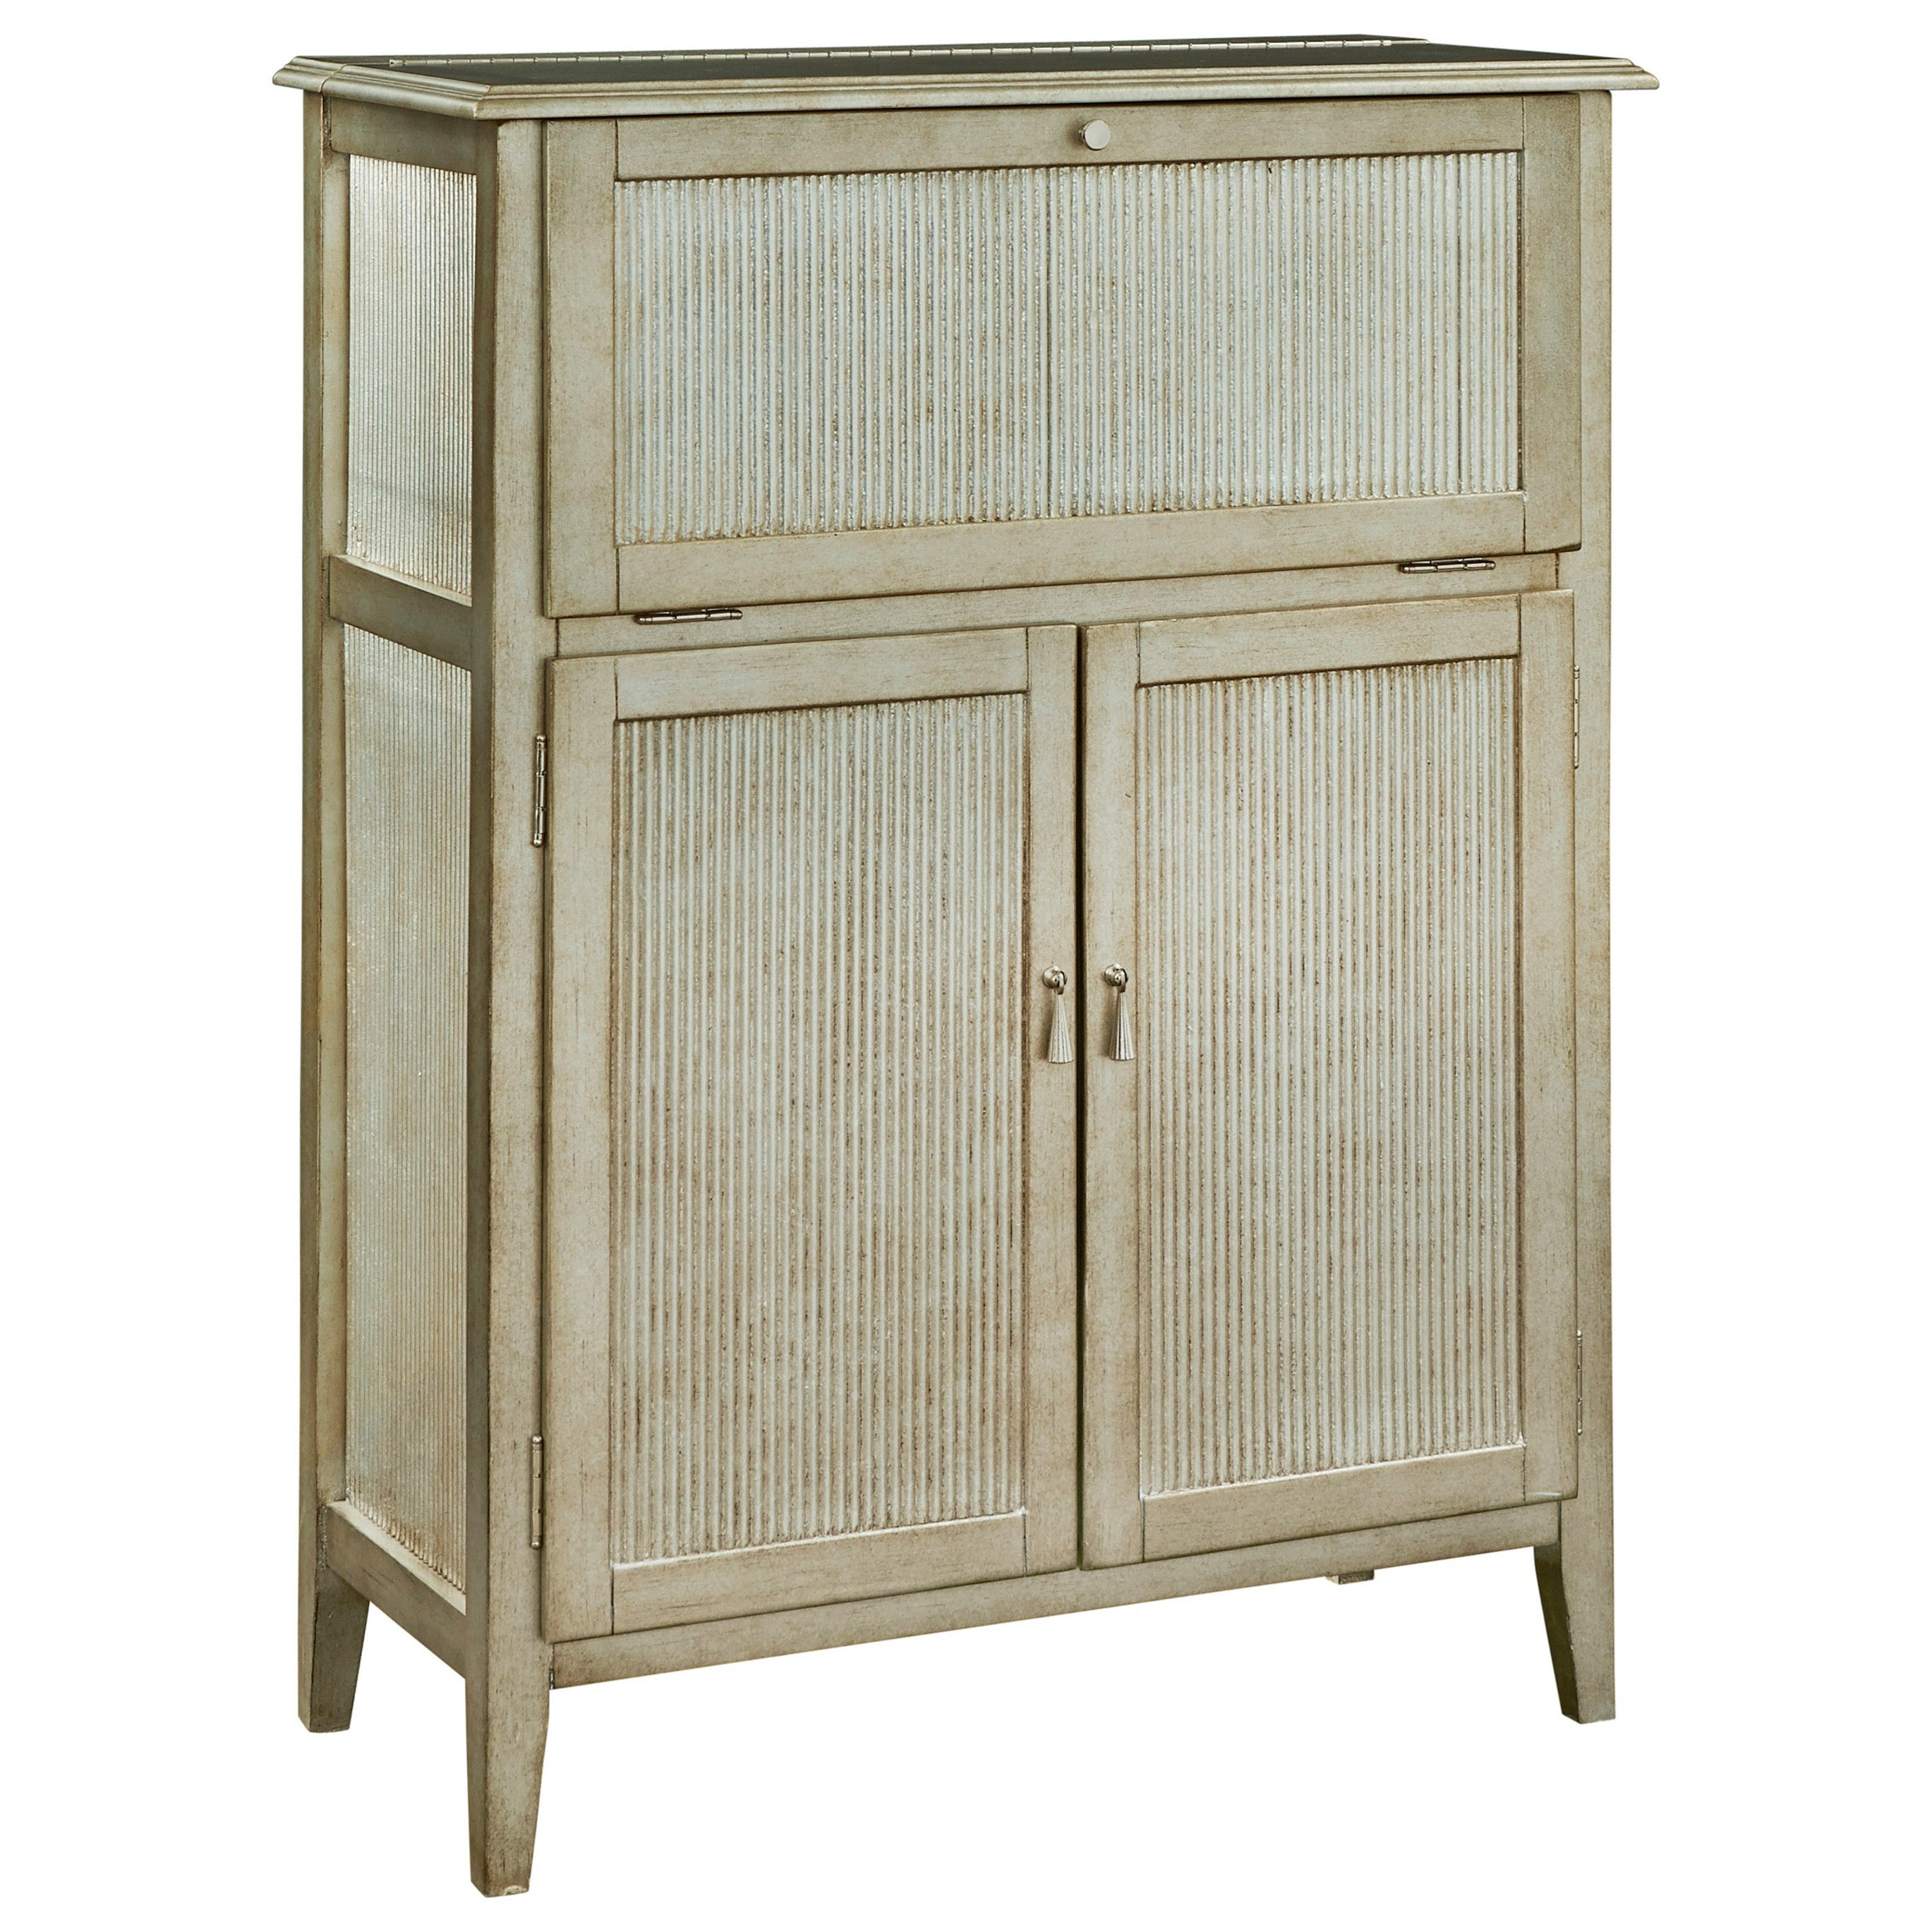 Pulaski Furniture Accents Accent Bar - Item Number: 766066